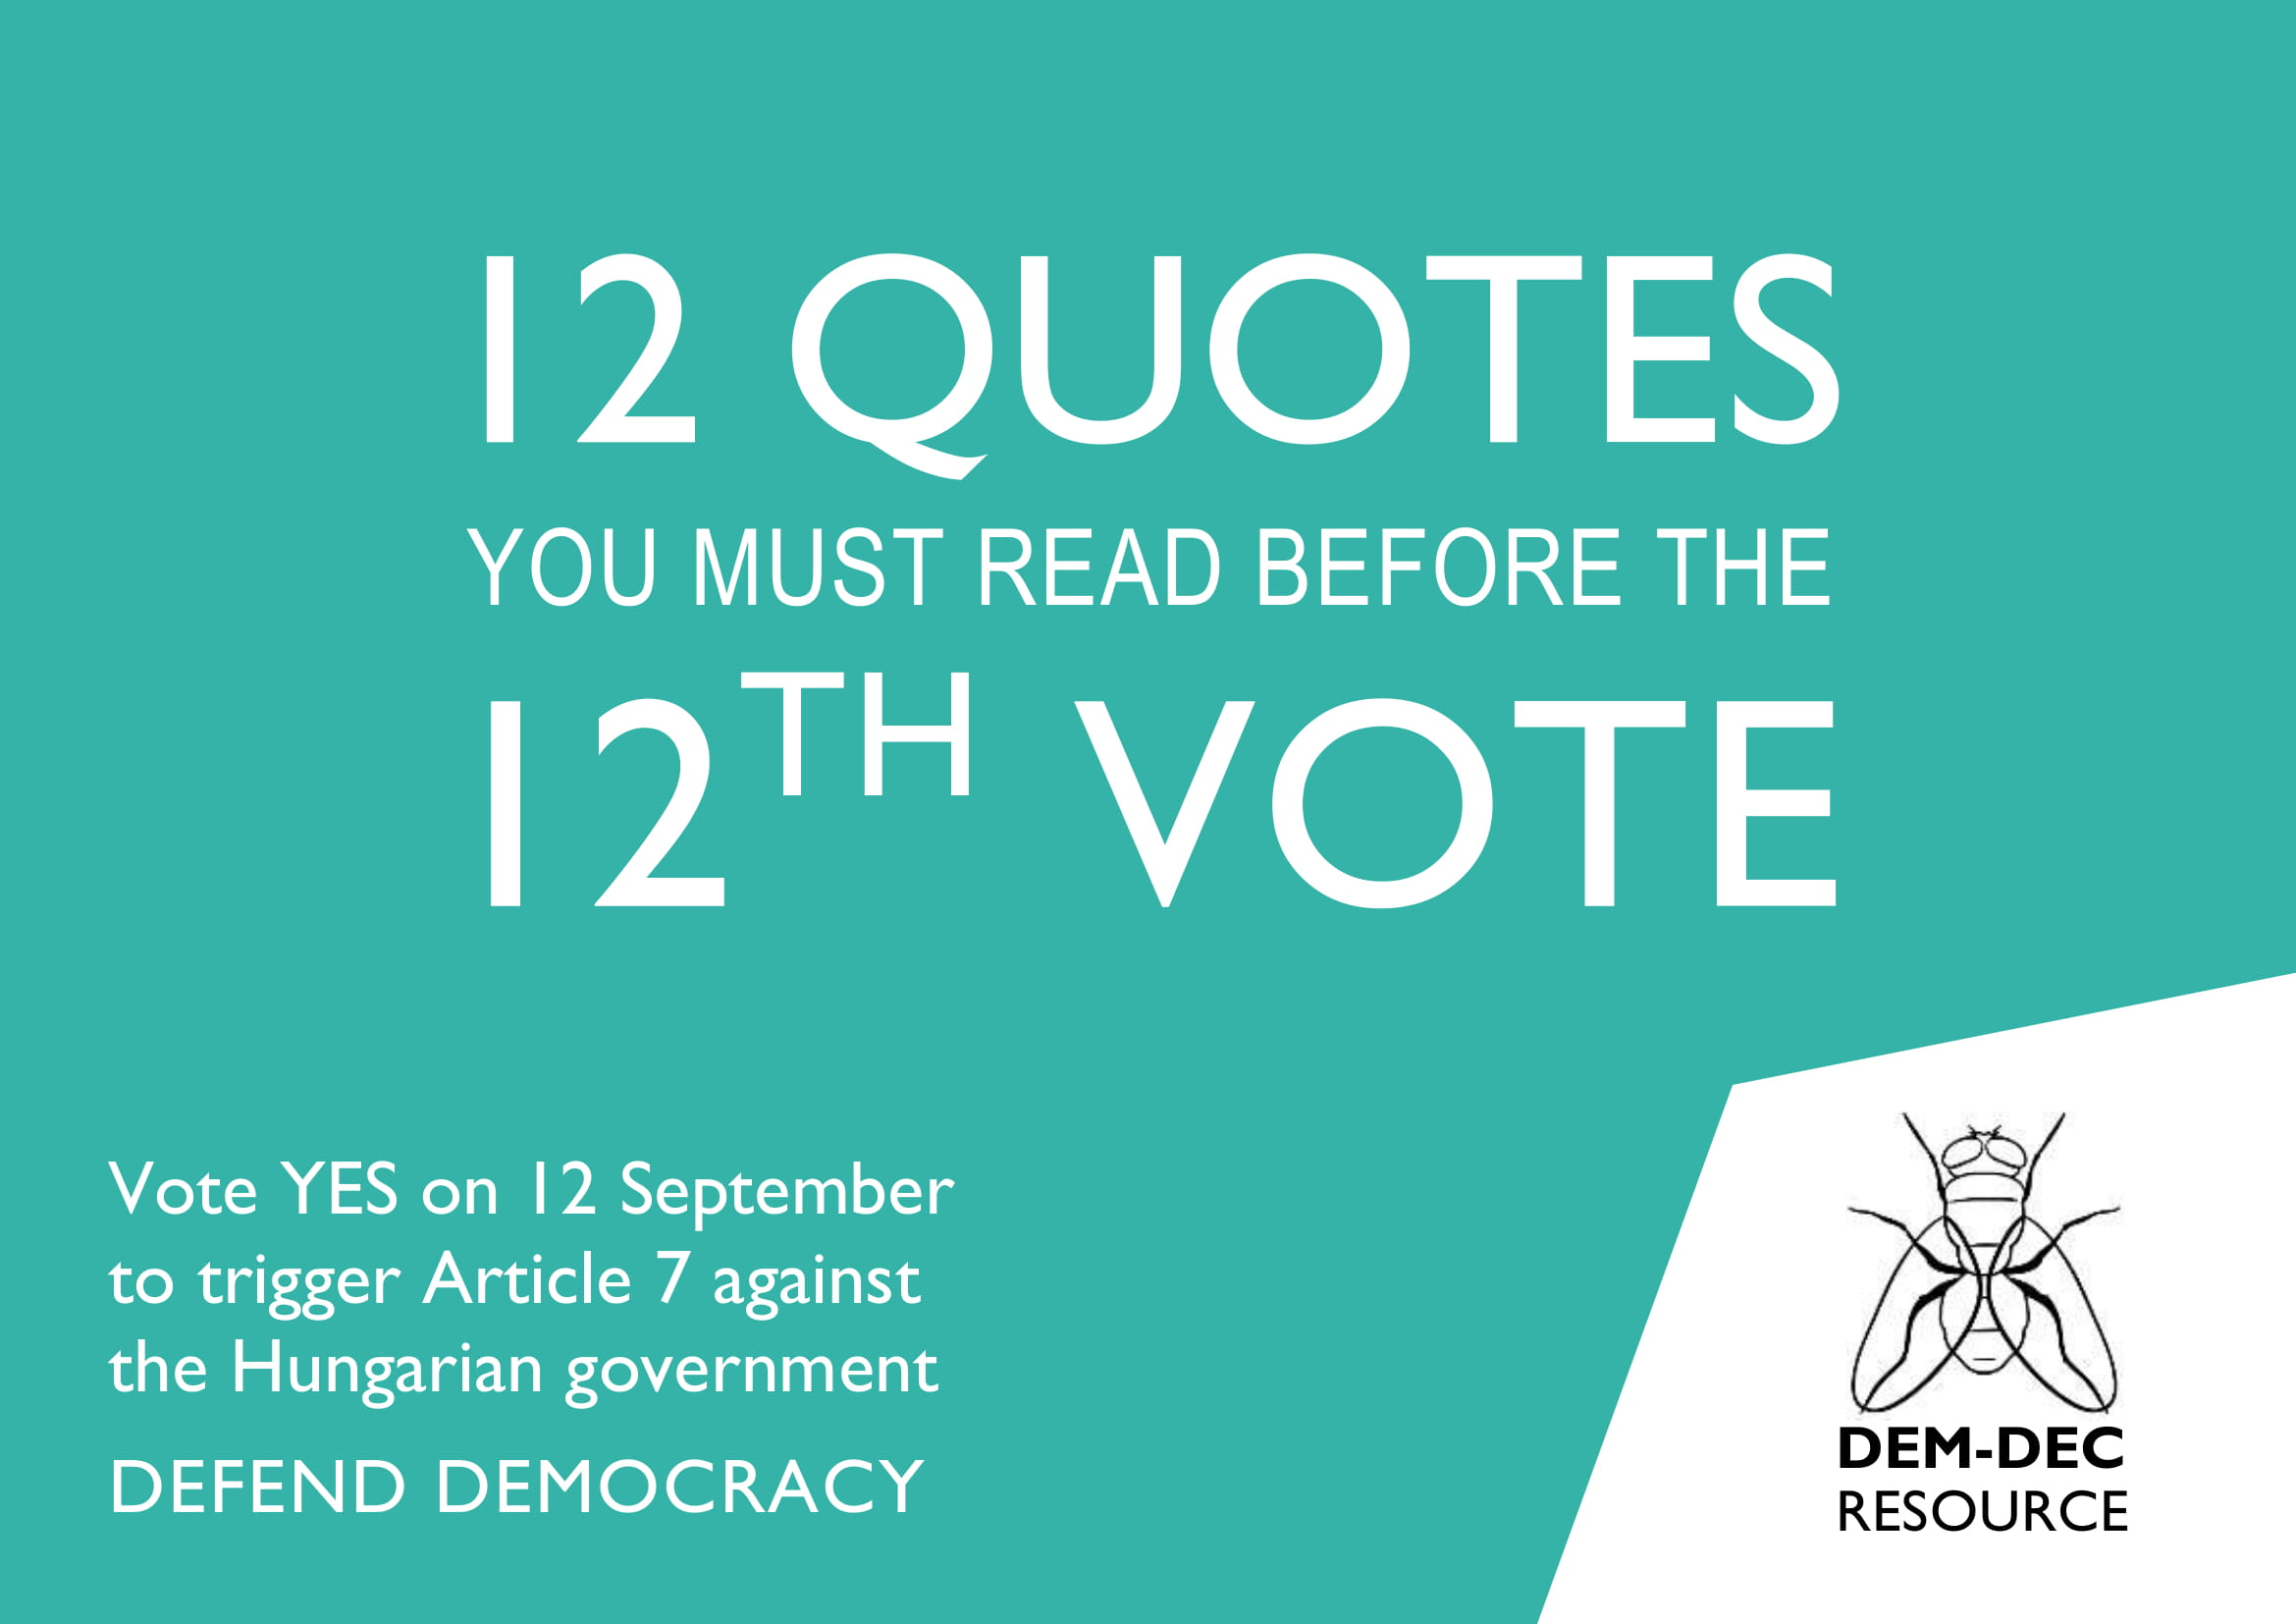 12 Quotes for the 12th Vote [draft]-01.jpg